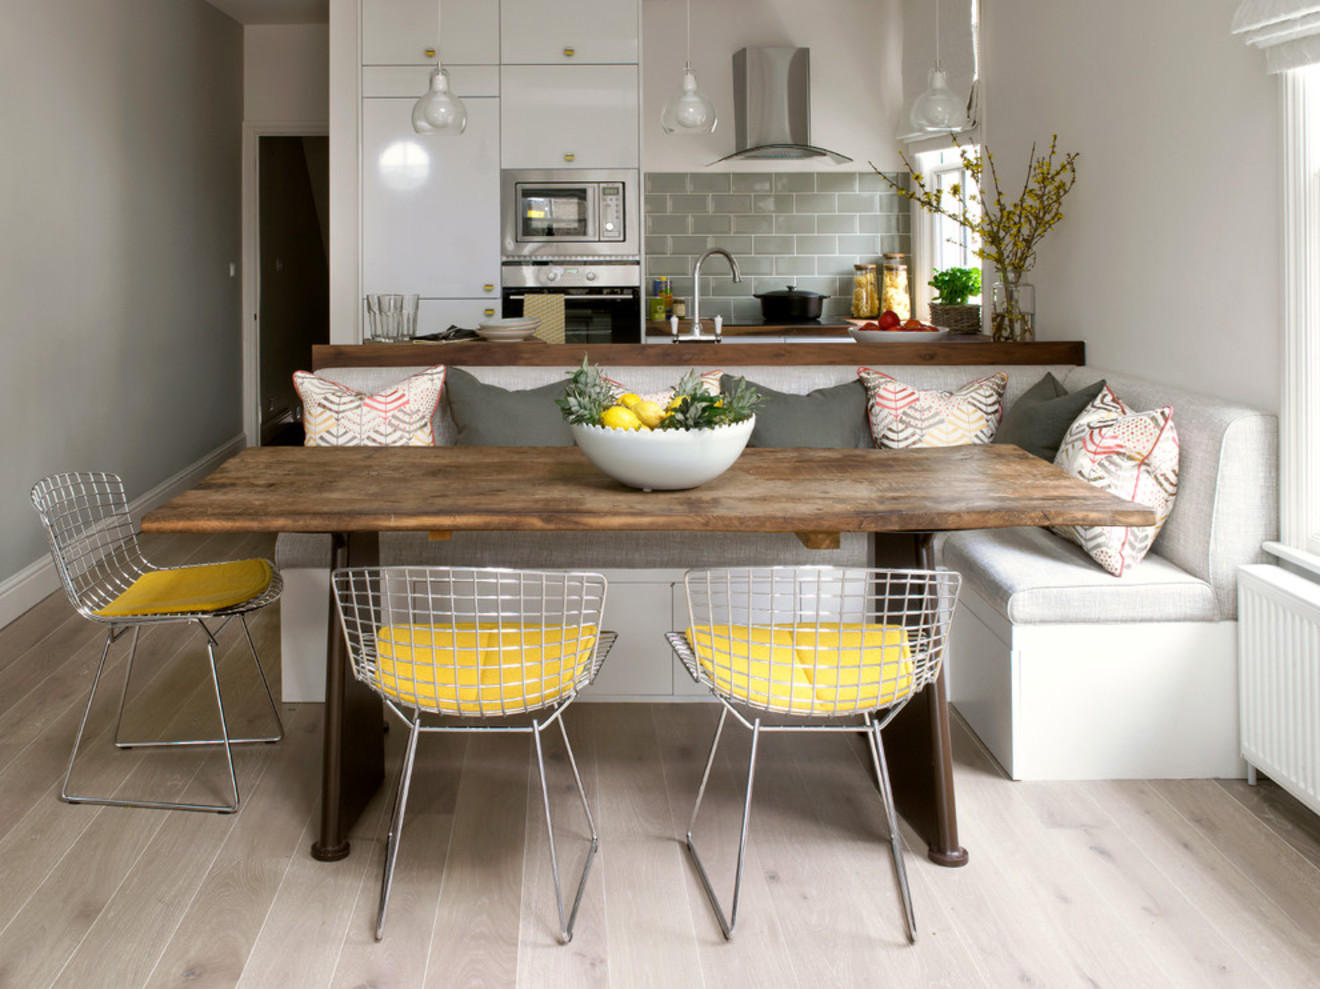 16 Stunning Breakfast Nook Design Ideas For Your Home Improvement